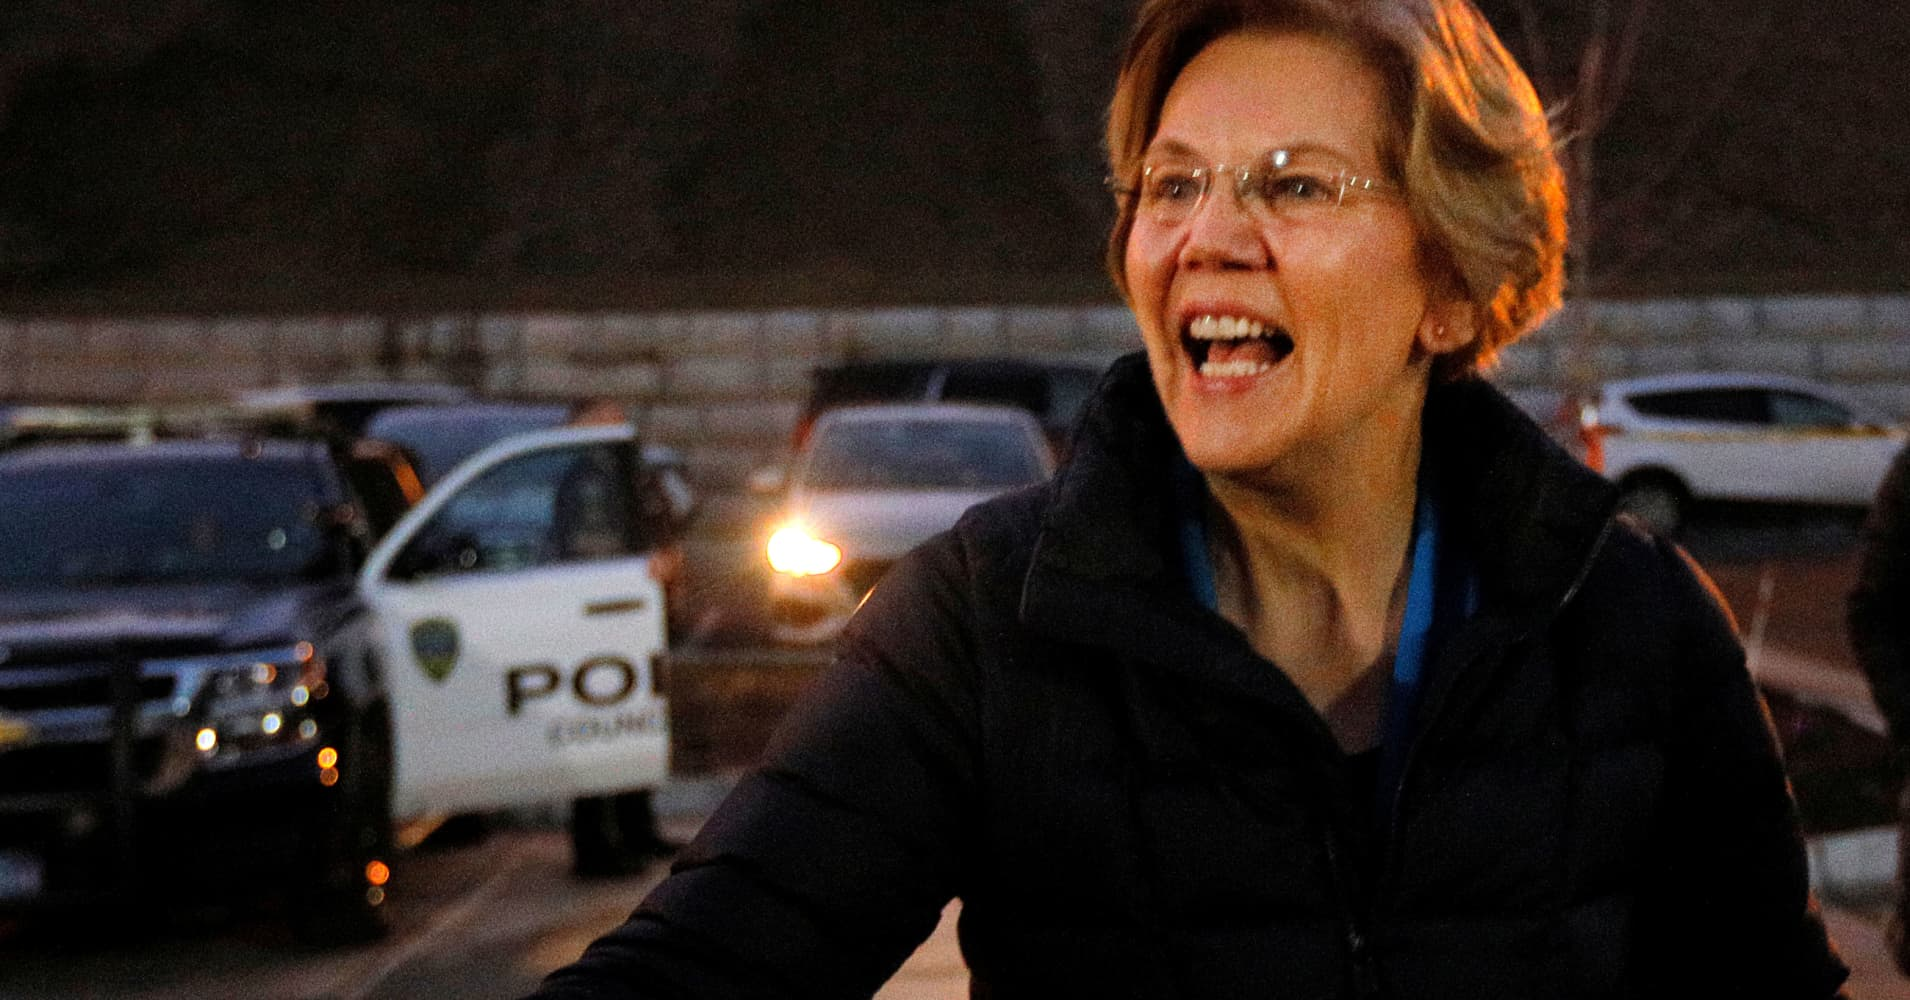 Elizabeth Warren already owns two huge policy issues that could shape the 2020 presidential race